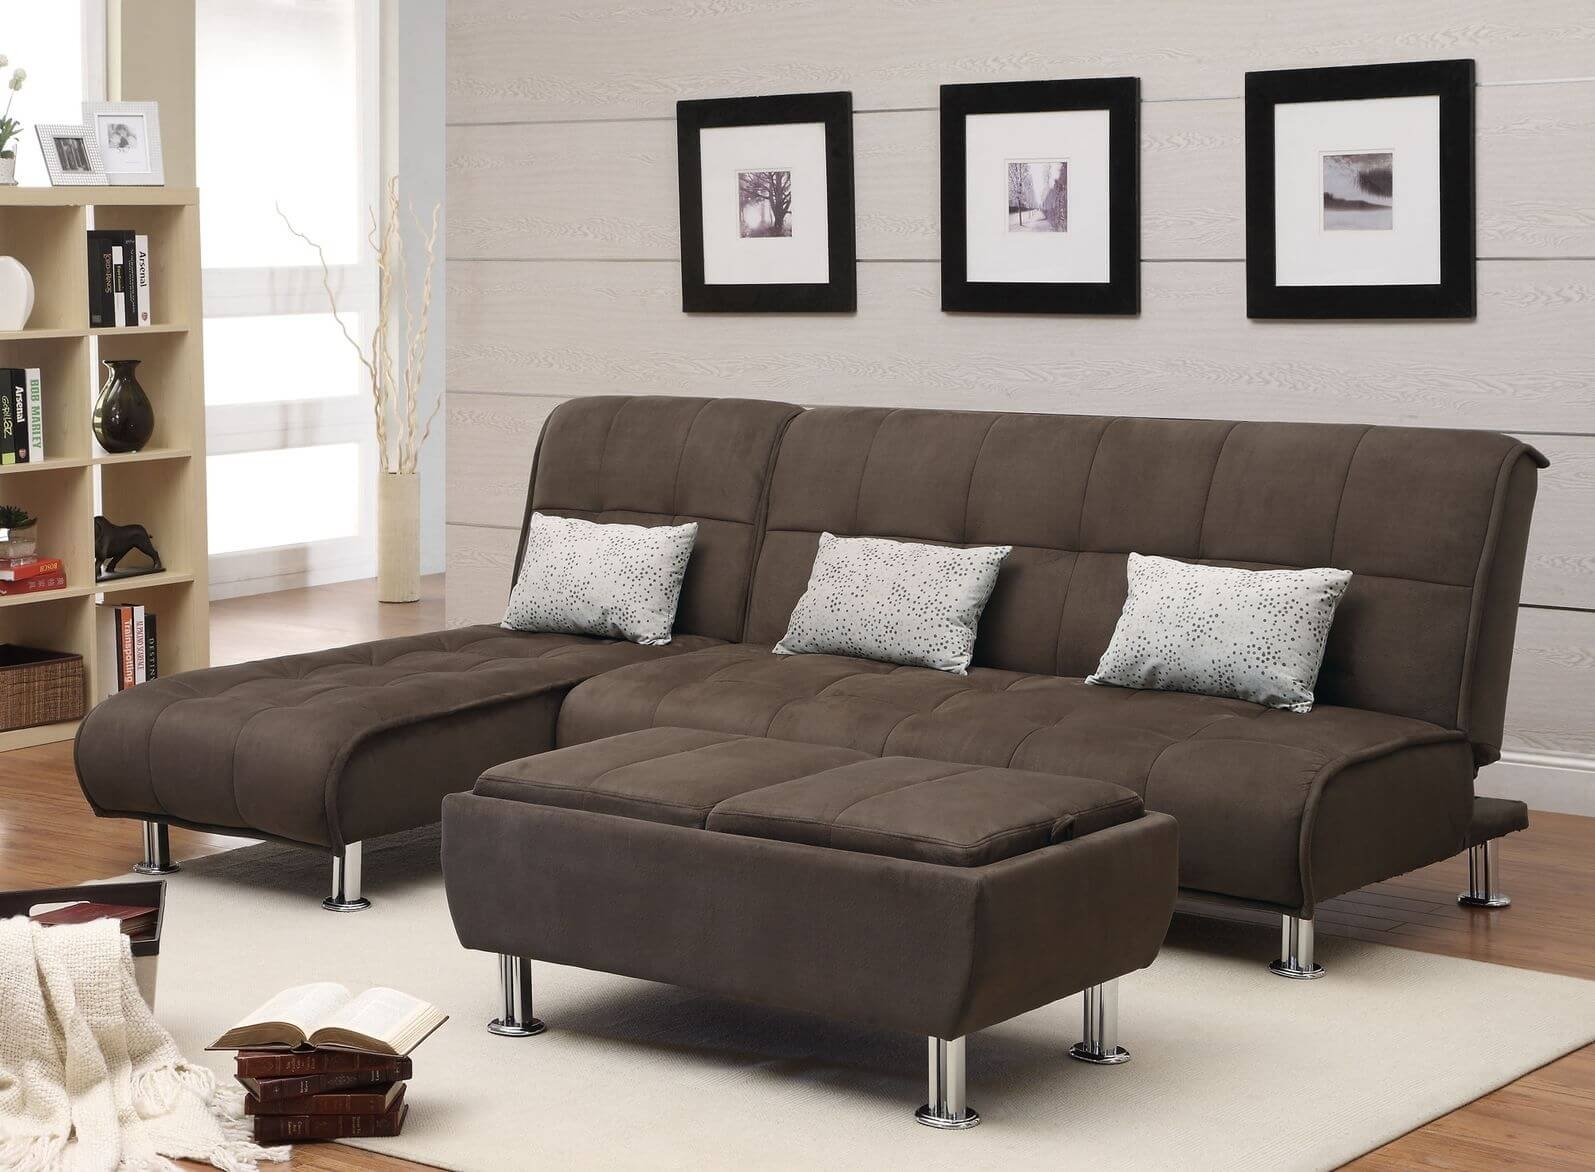 Furniture : Ethan Allen Wood Sofa Chaise Lounge Furniture Indoor regarding Quad Cities Sectional Sofas (Image 6 of 10)